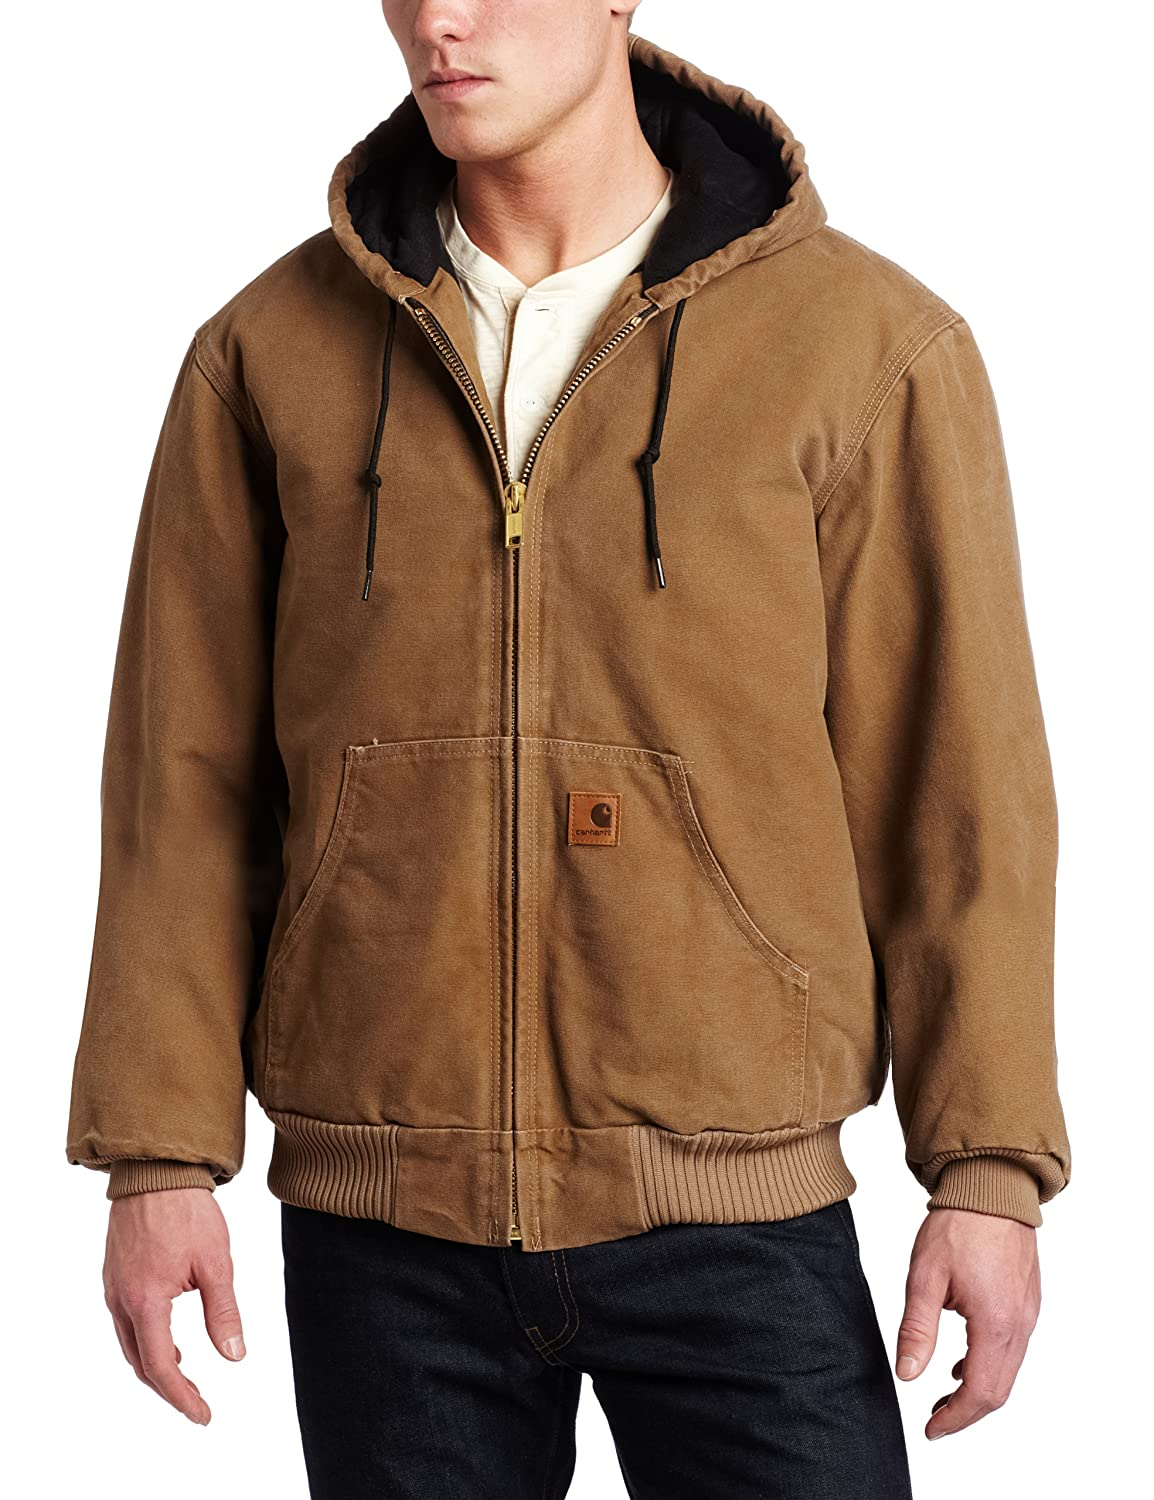 Carhartt Mens Big /& Tall Quilted Flannel-Lined Sandstone Active Jacket J130 Carhartt Sportswear Mens